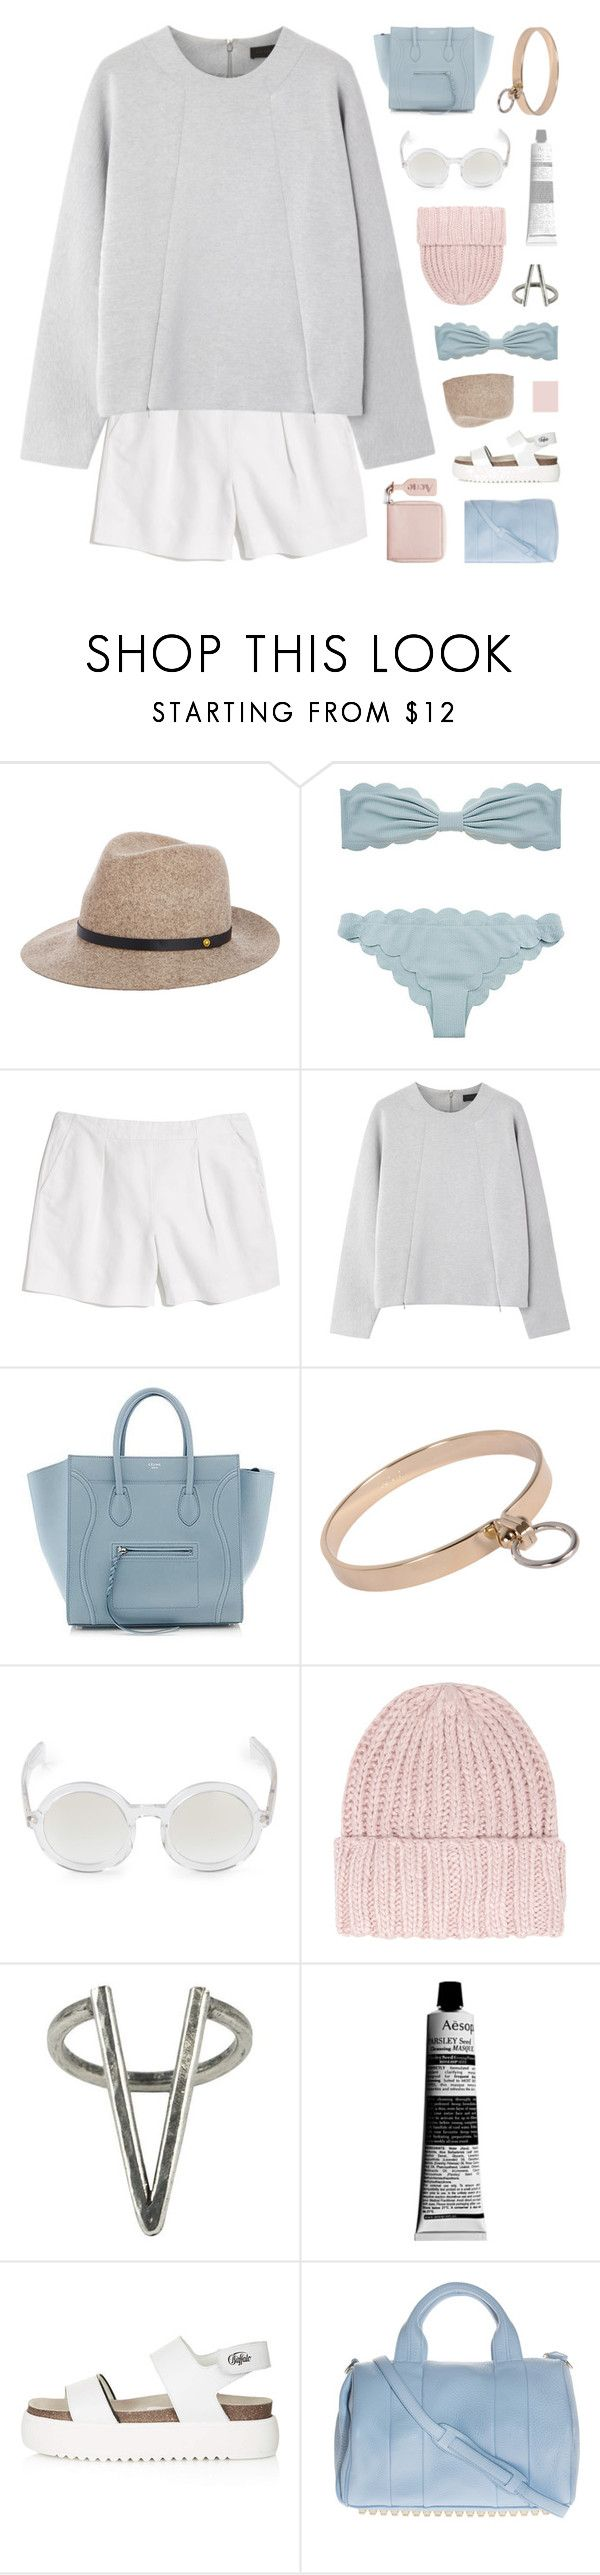 """""""ZEPHYRUS"""" by bosspresident ❤ liked on Polyvore featuring rag & bone, Madewell, dVb Victoria Beckham, A.L.C., Jil Sander, Dorothy Perkins, The 2 Bandits, Aesop, Topshop and Alexander Wang"""